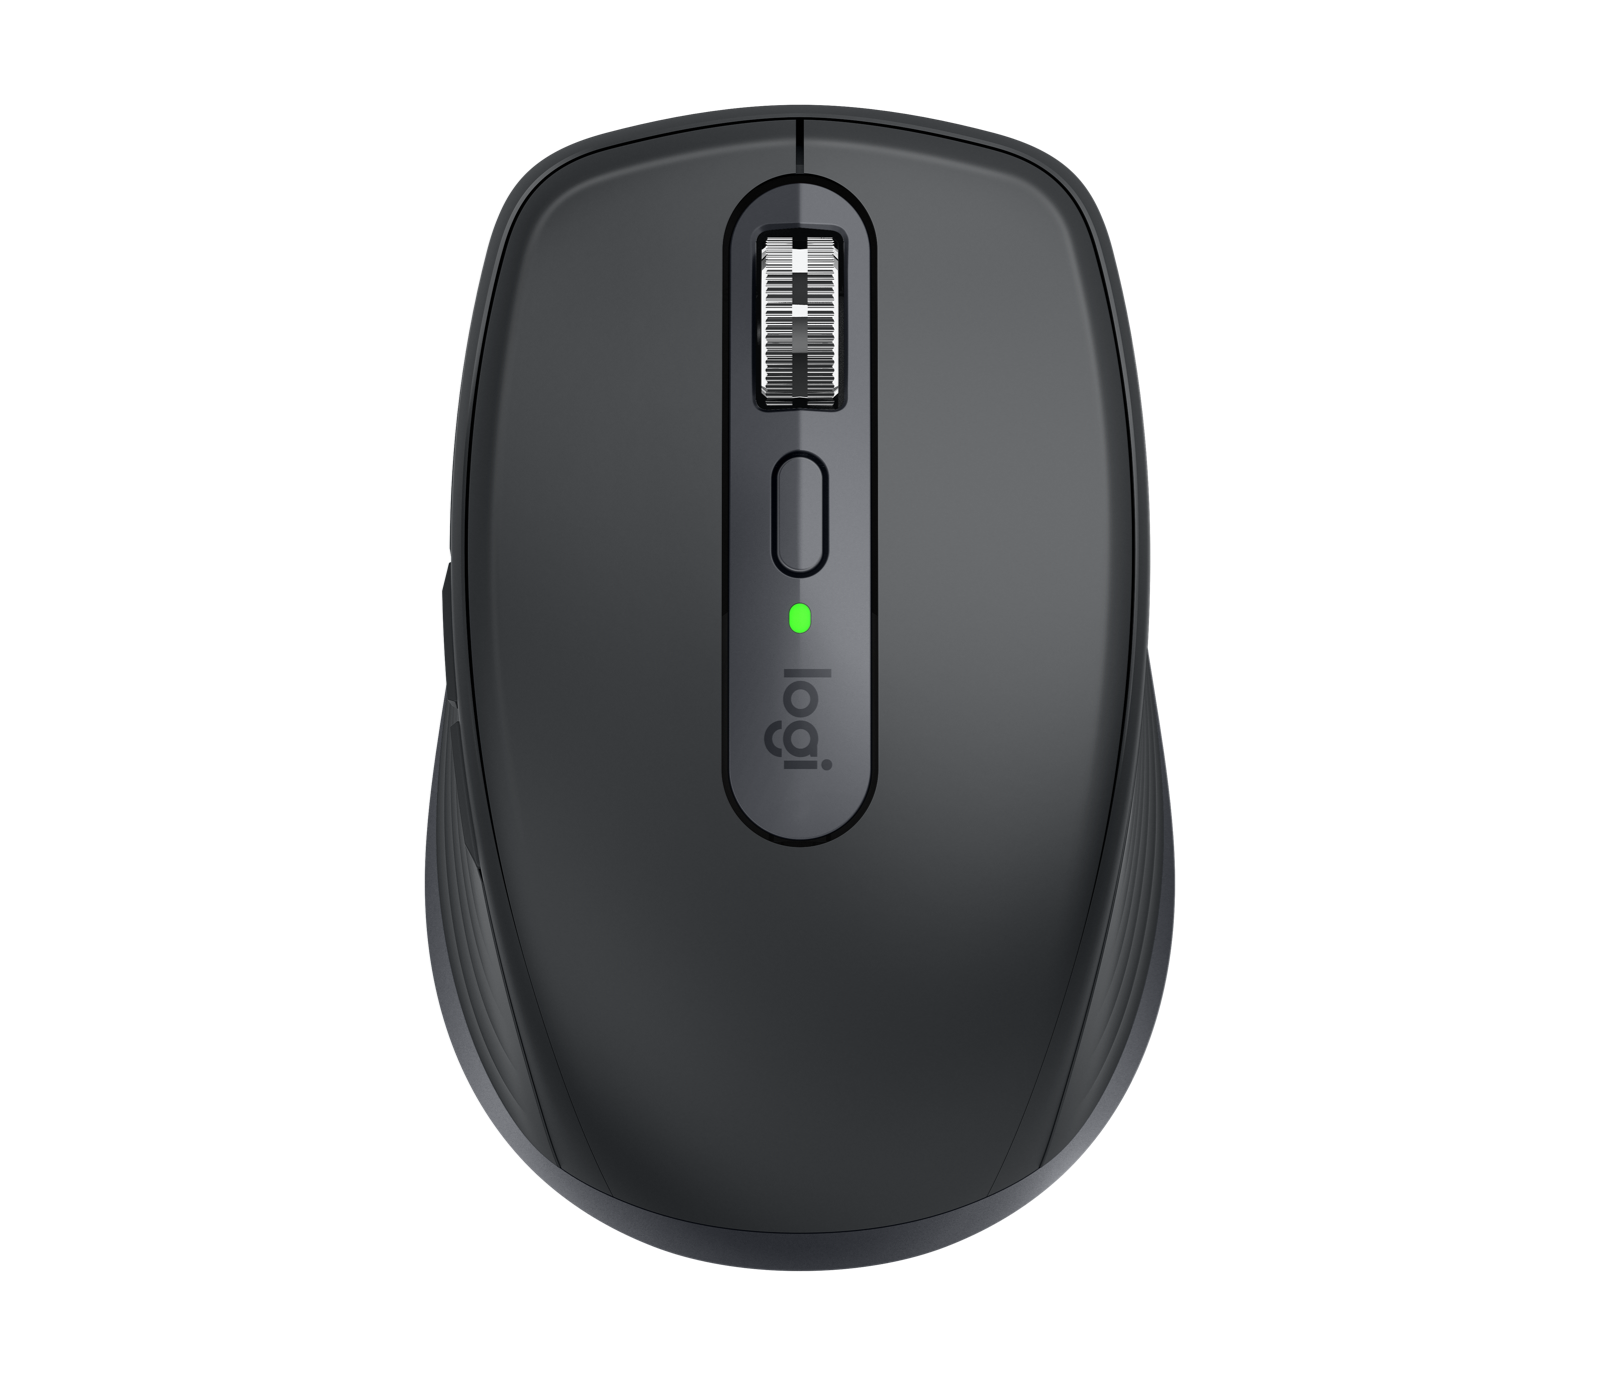 Logitech MX Anywhere 3 wireless mouse. BEST OFFER!